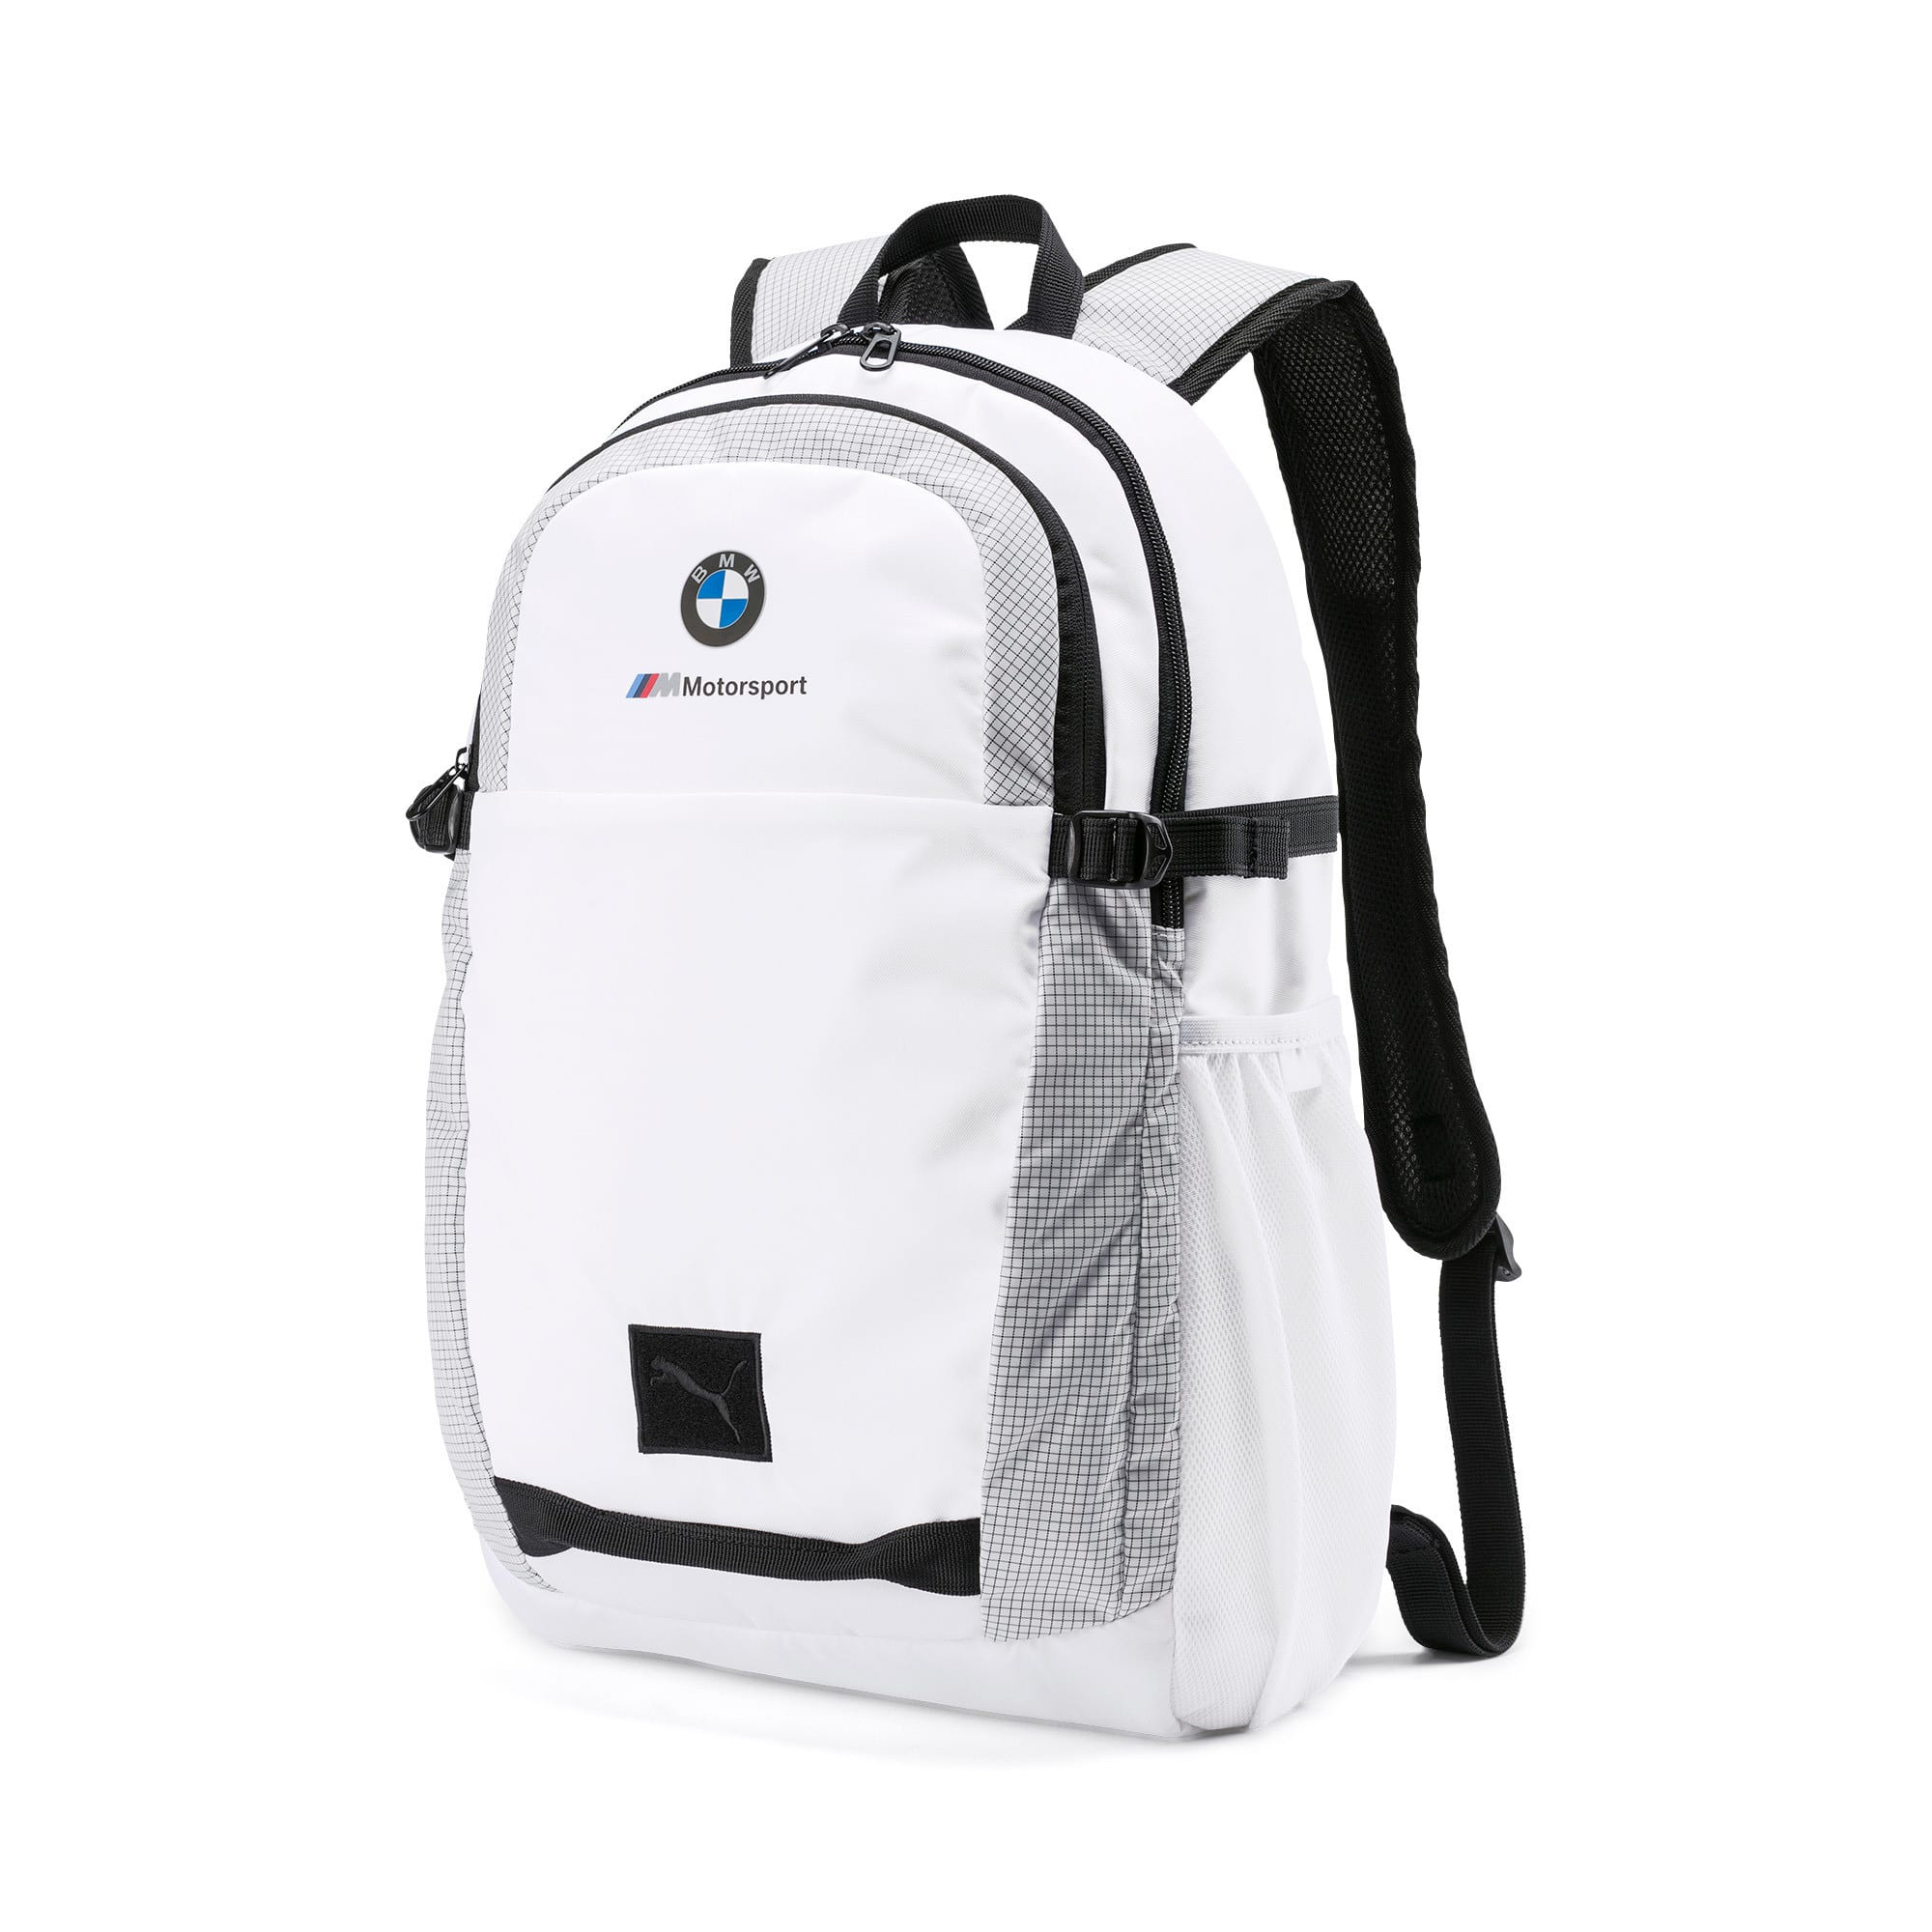 Thumbnail 1 of BMW M Motorsport Backpack, Puma White, medium